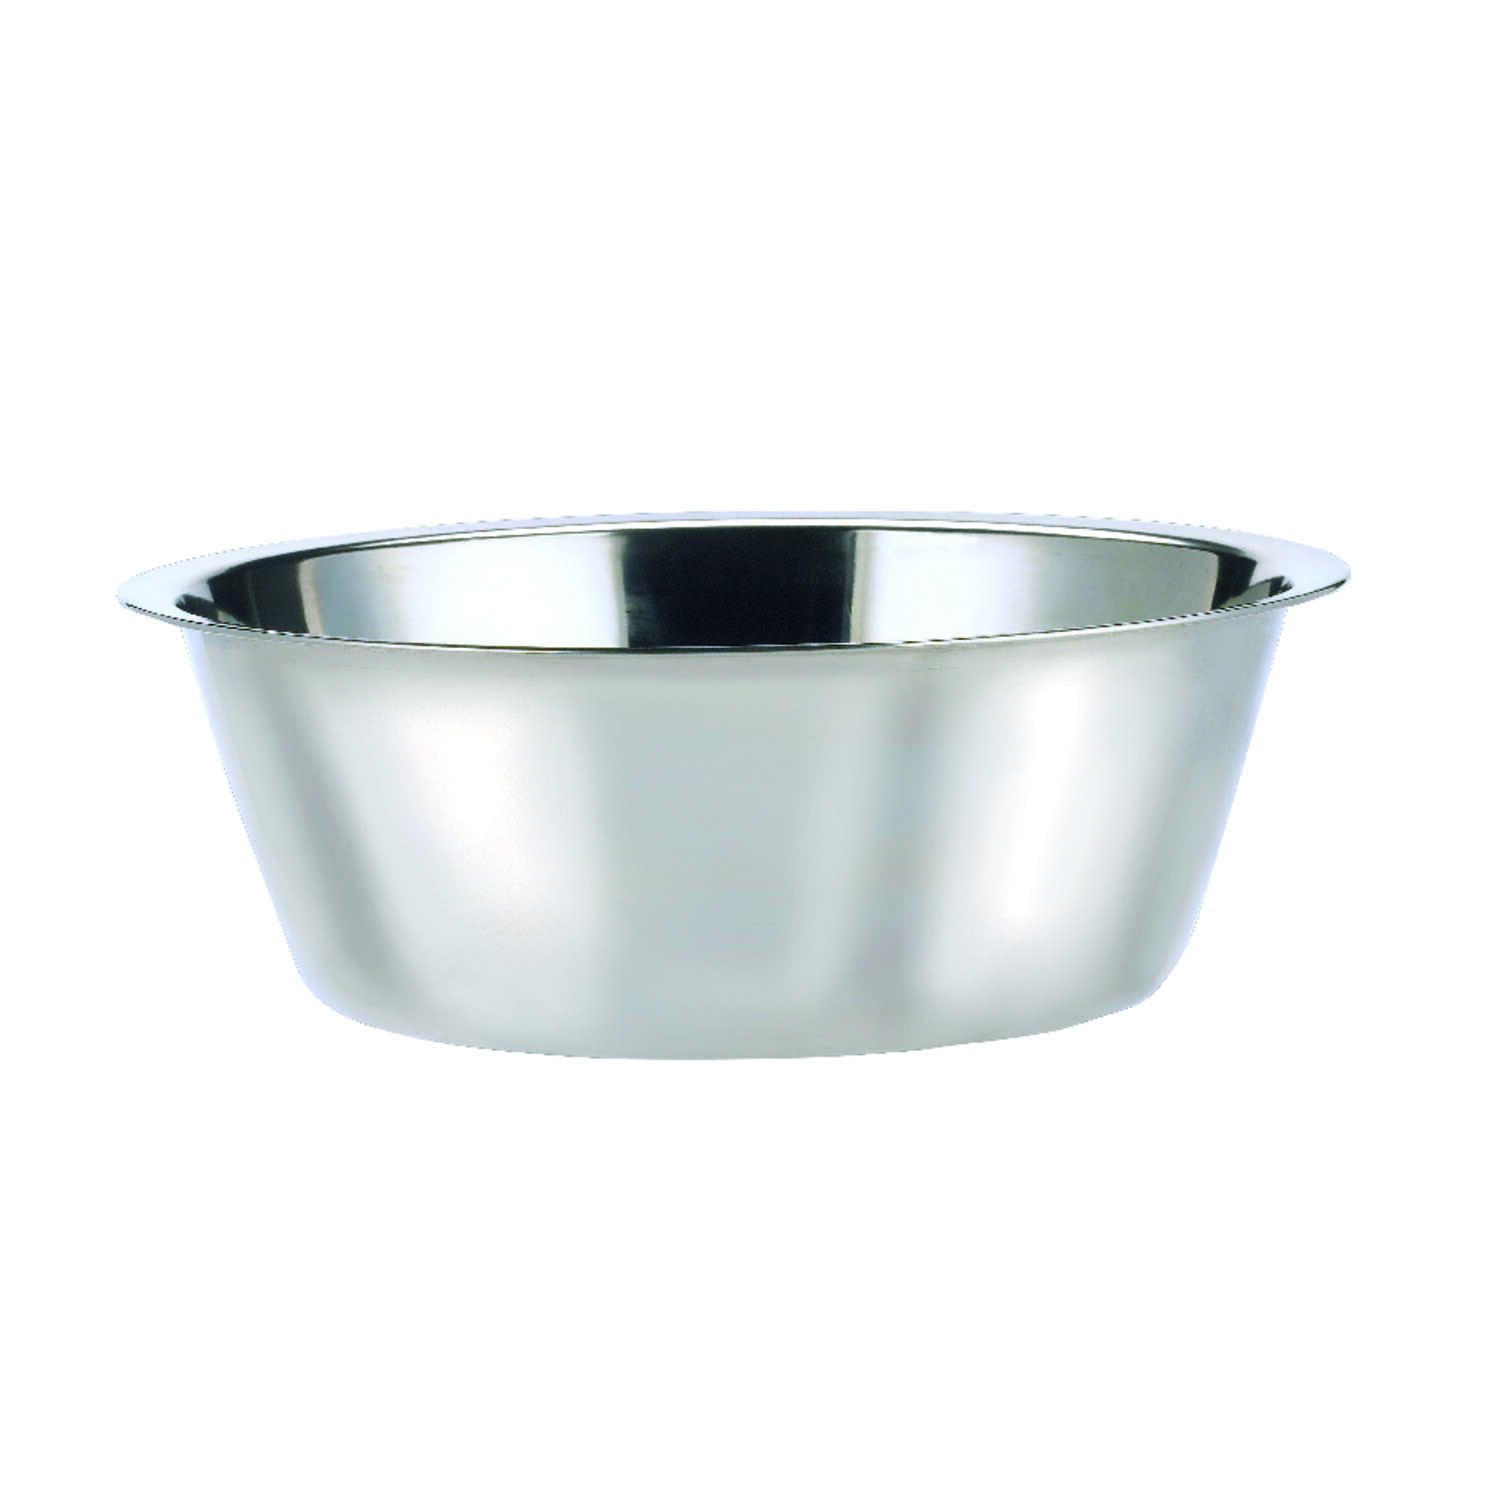 Hilo  Silver  Plain  Stainless Steel  20 cups Pet Dish  For Dog